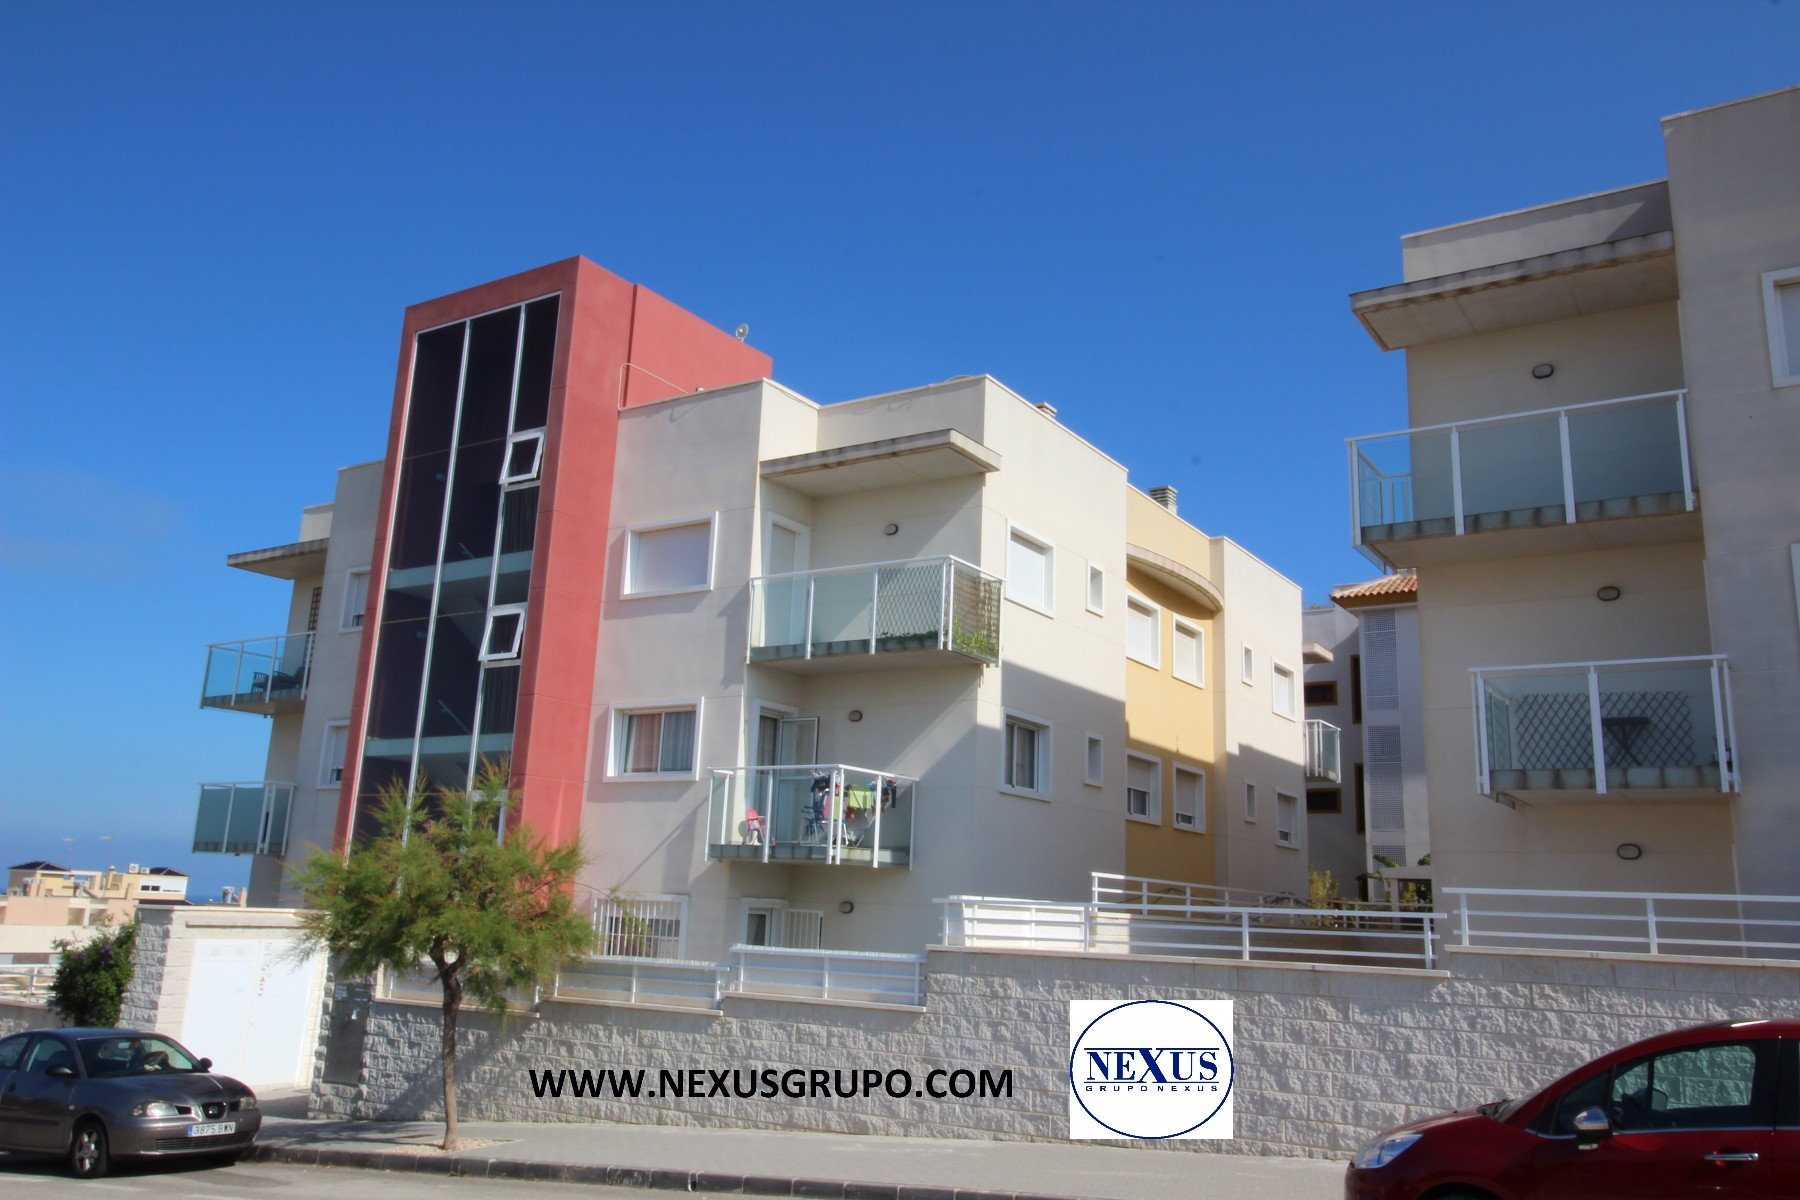 3 bedroom Apartment in Guardamar in Nexus Grupo